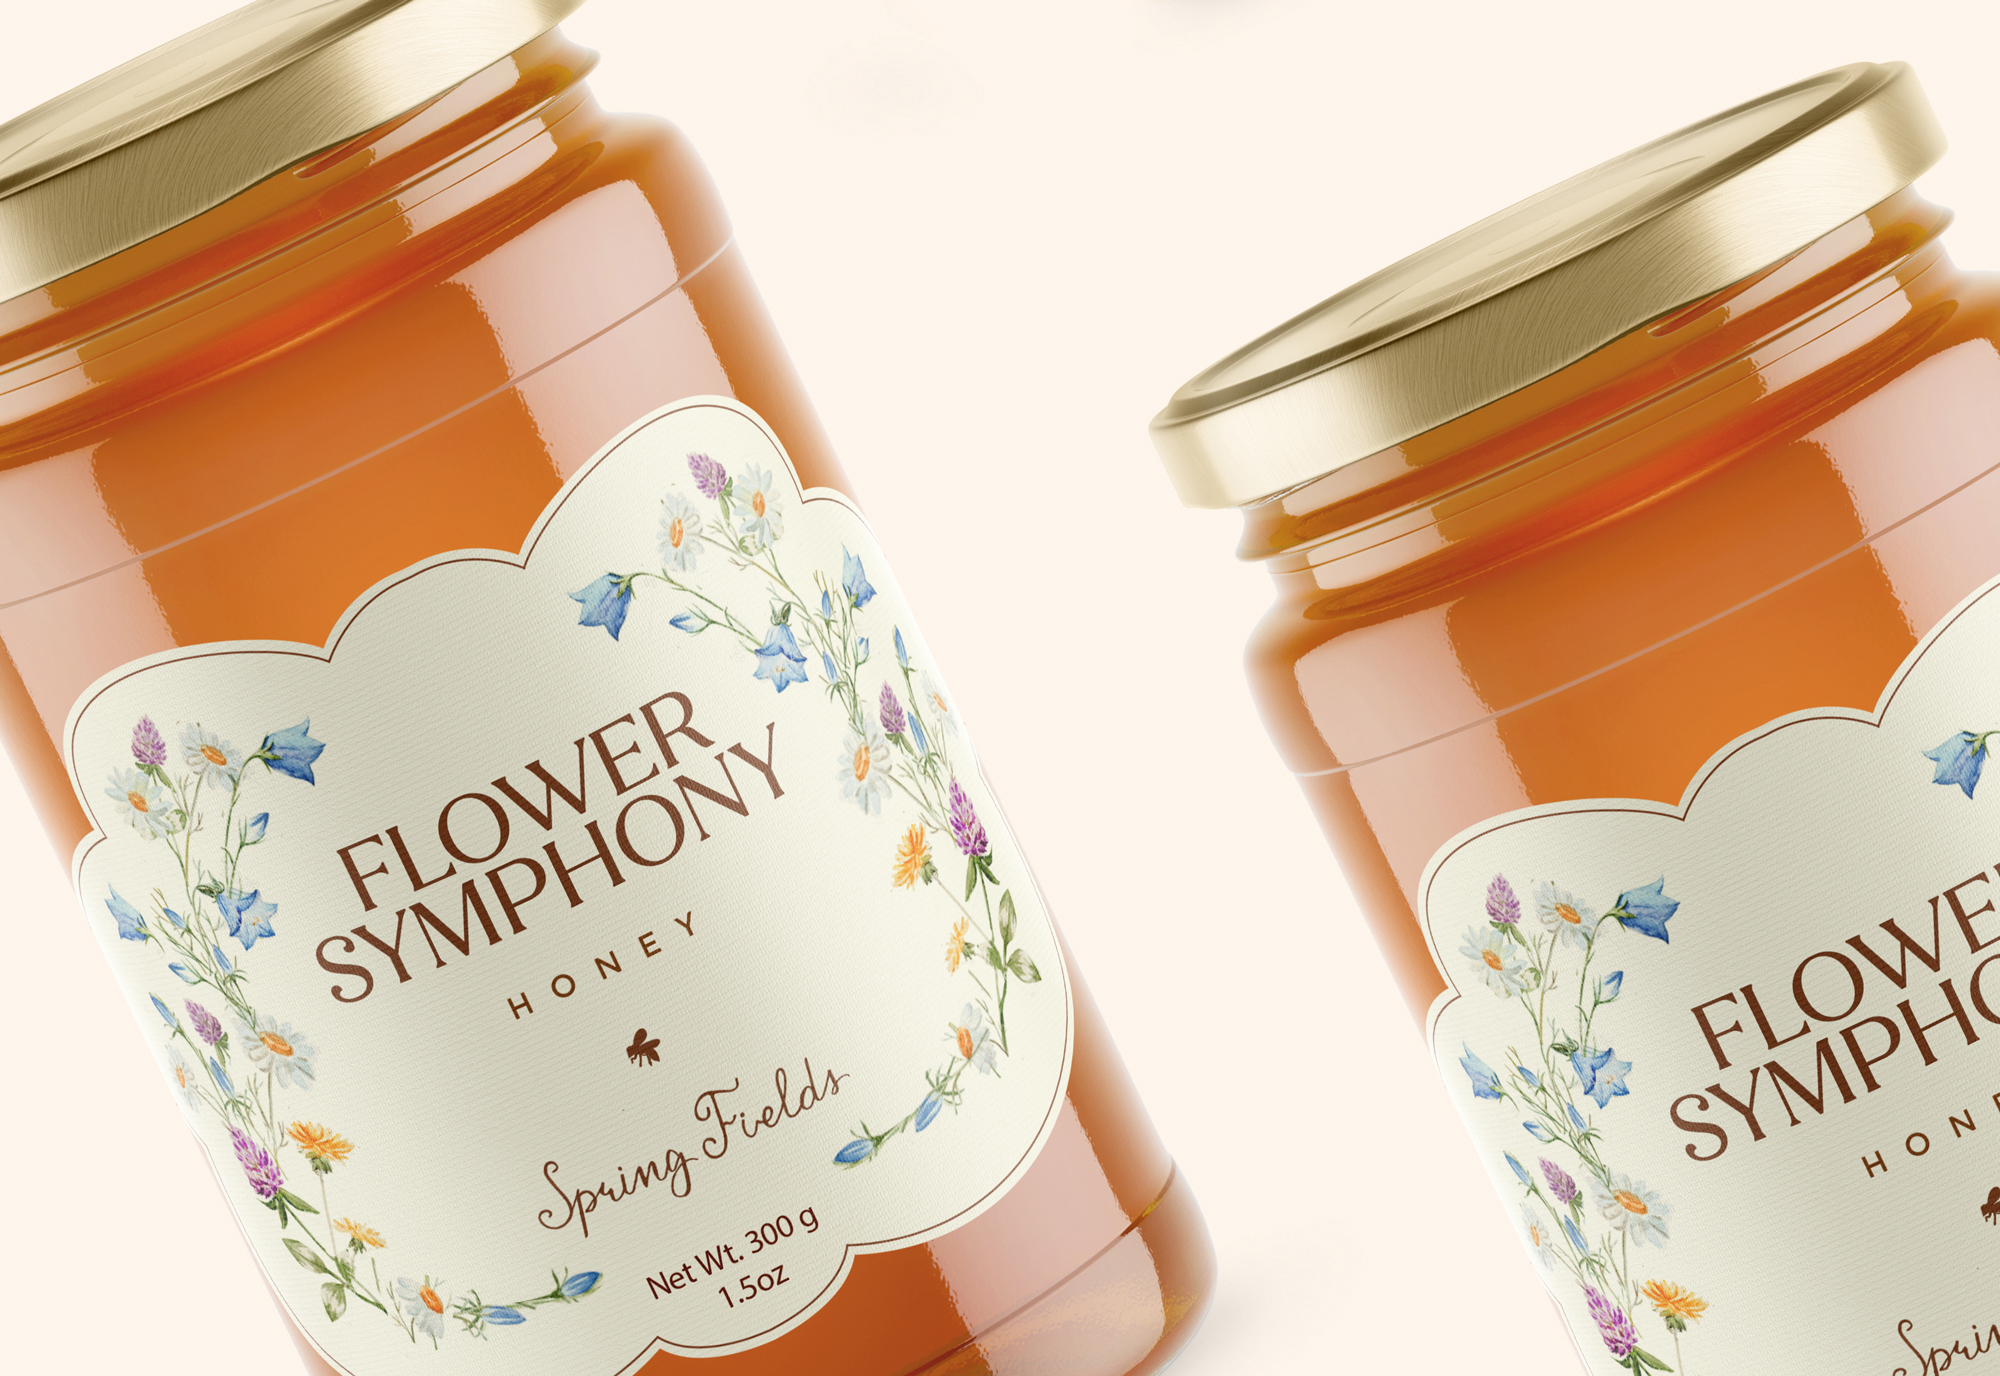 Honey Flower Symphony